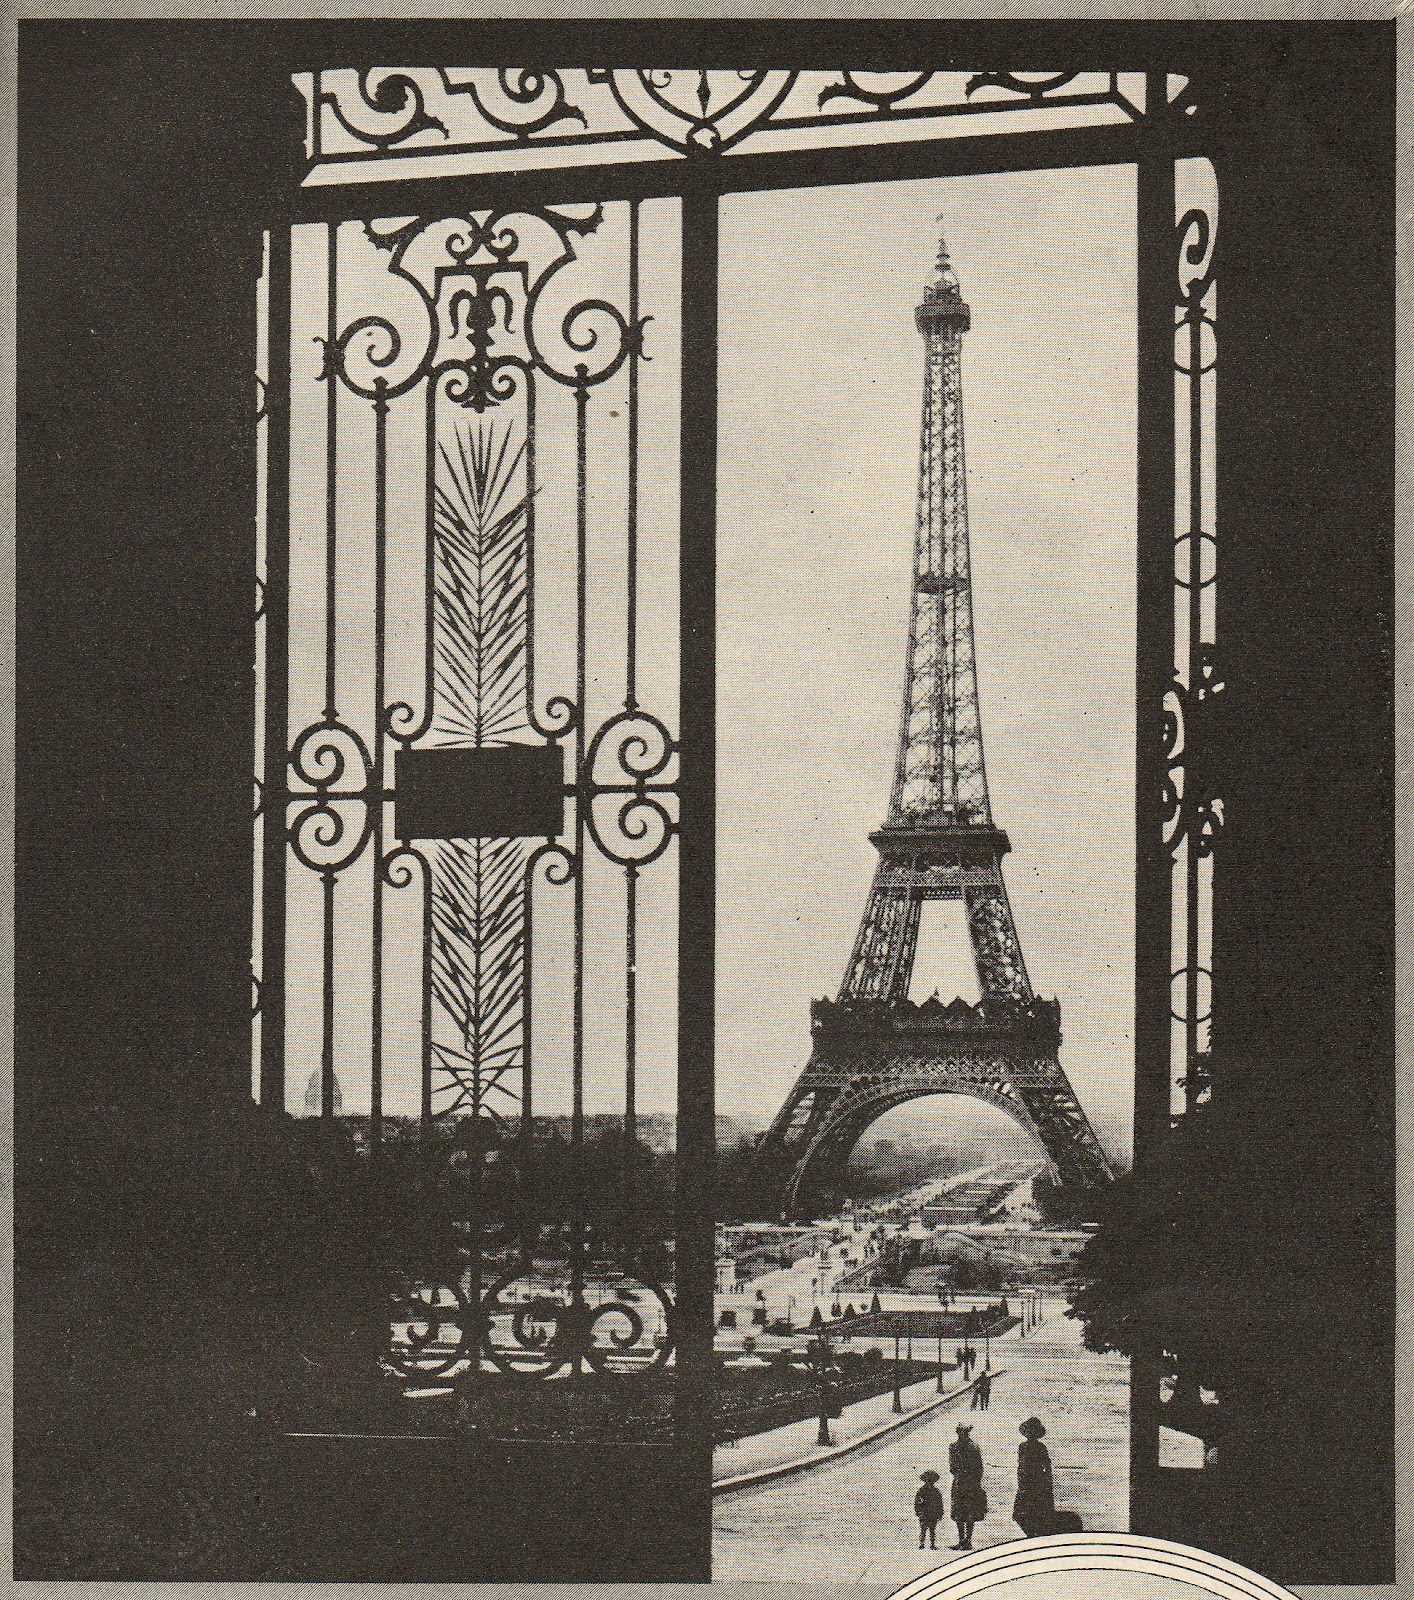 Leaping Frog Designs Hello Paris Vintage Eiffel Tower Image